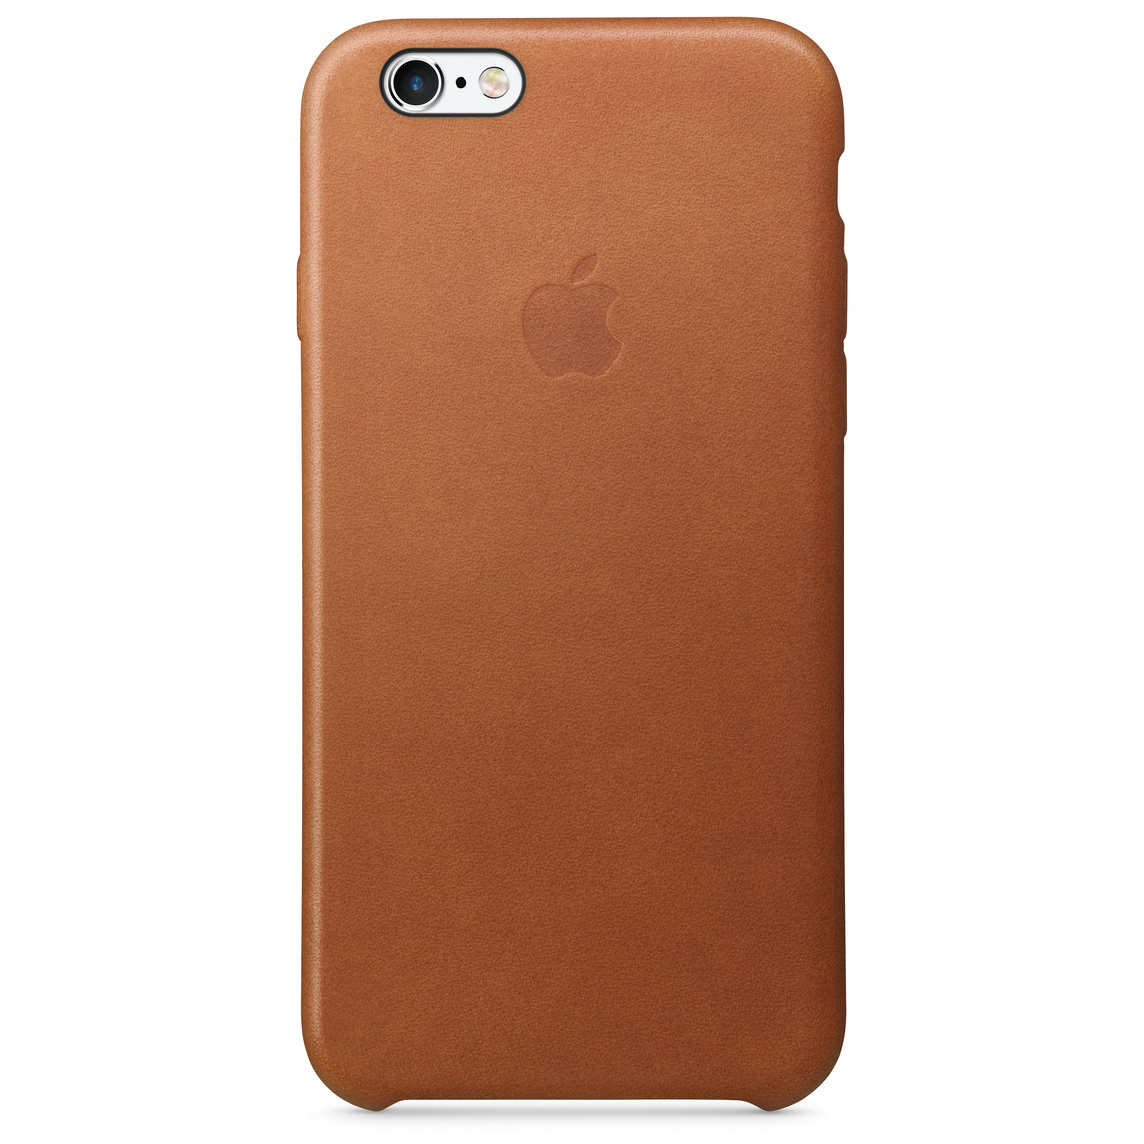 best online sale retailer detailed look Coque en cuir pour iPhone 6/6s - Havane